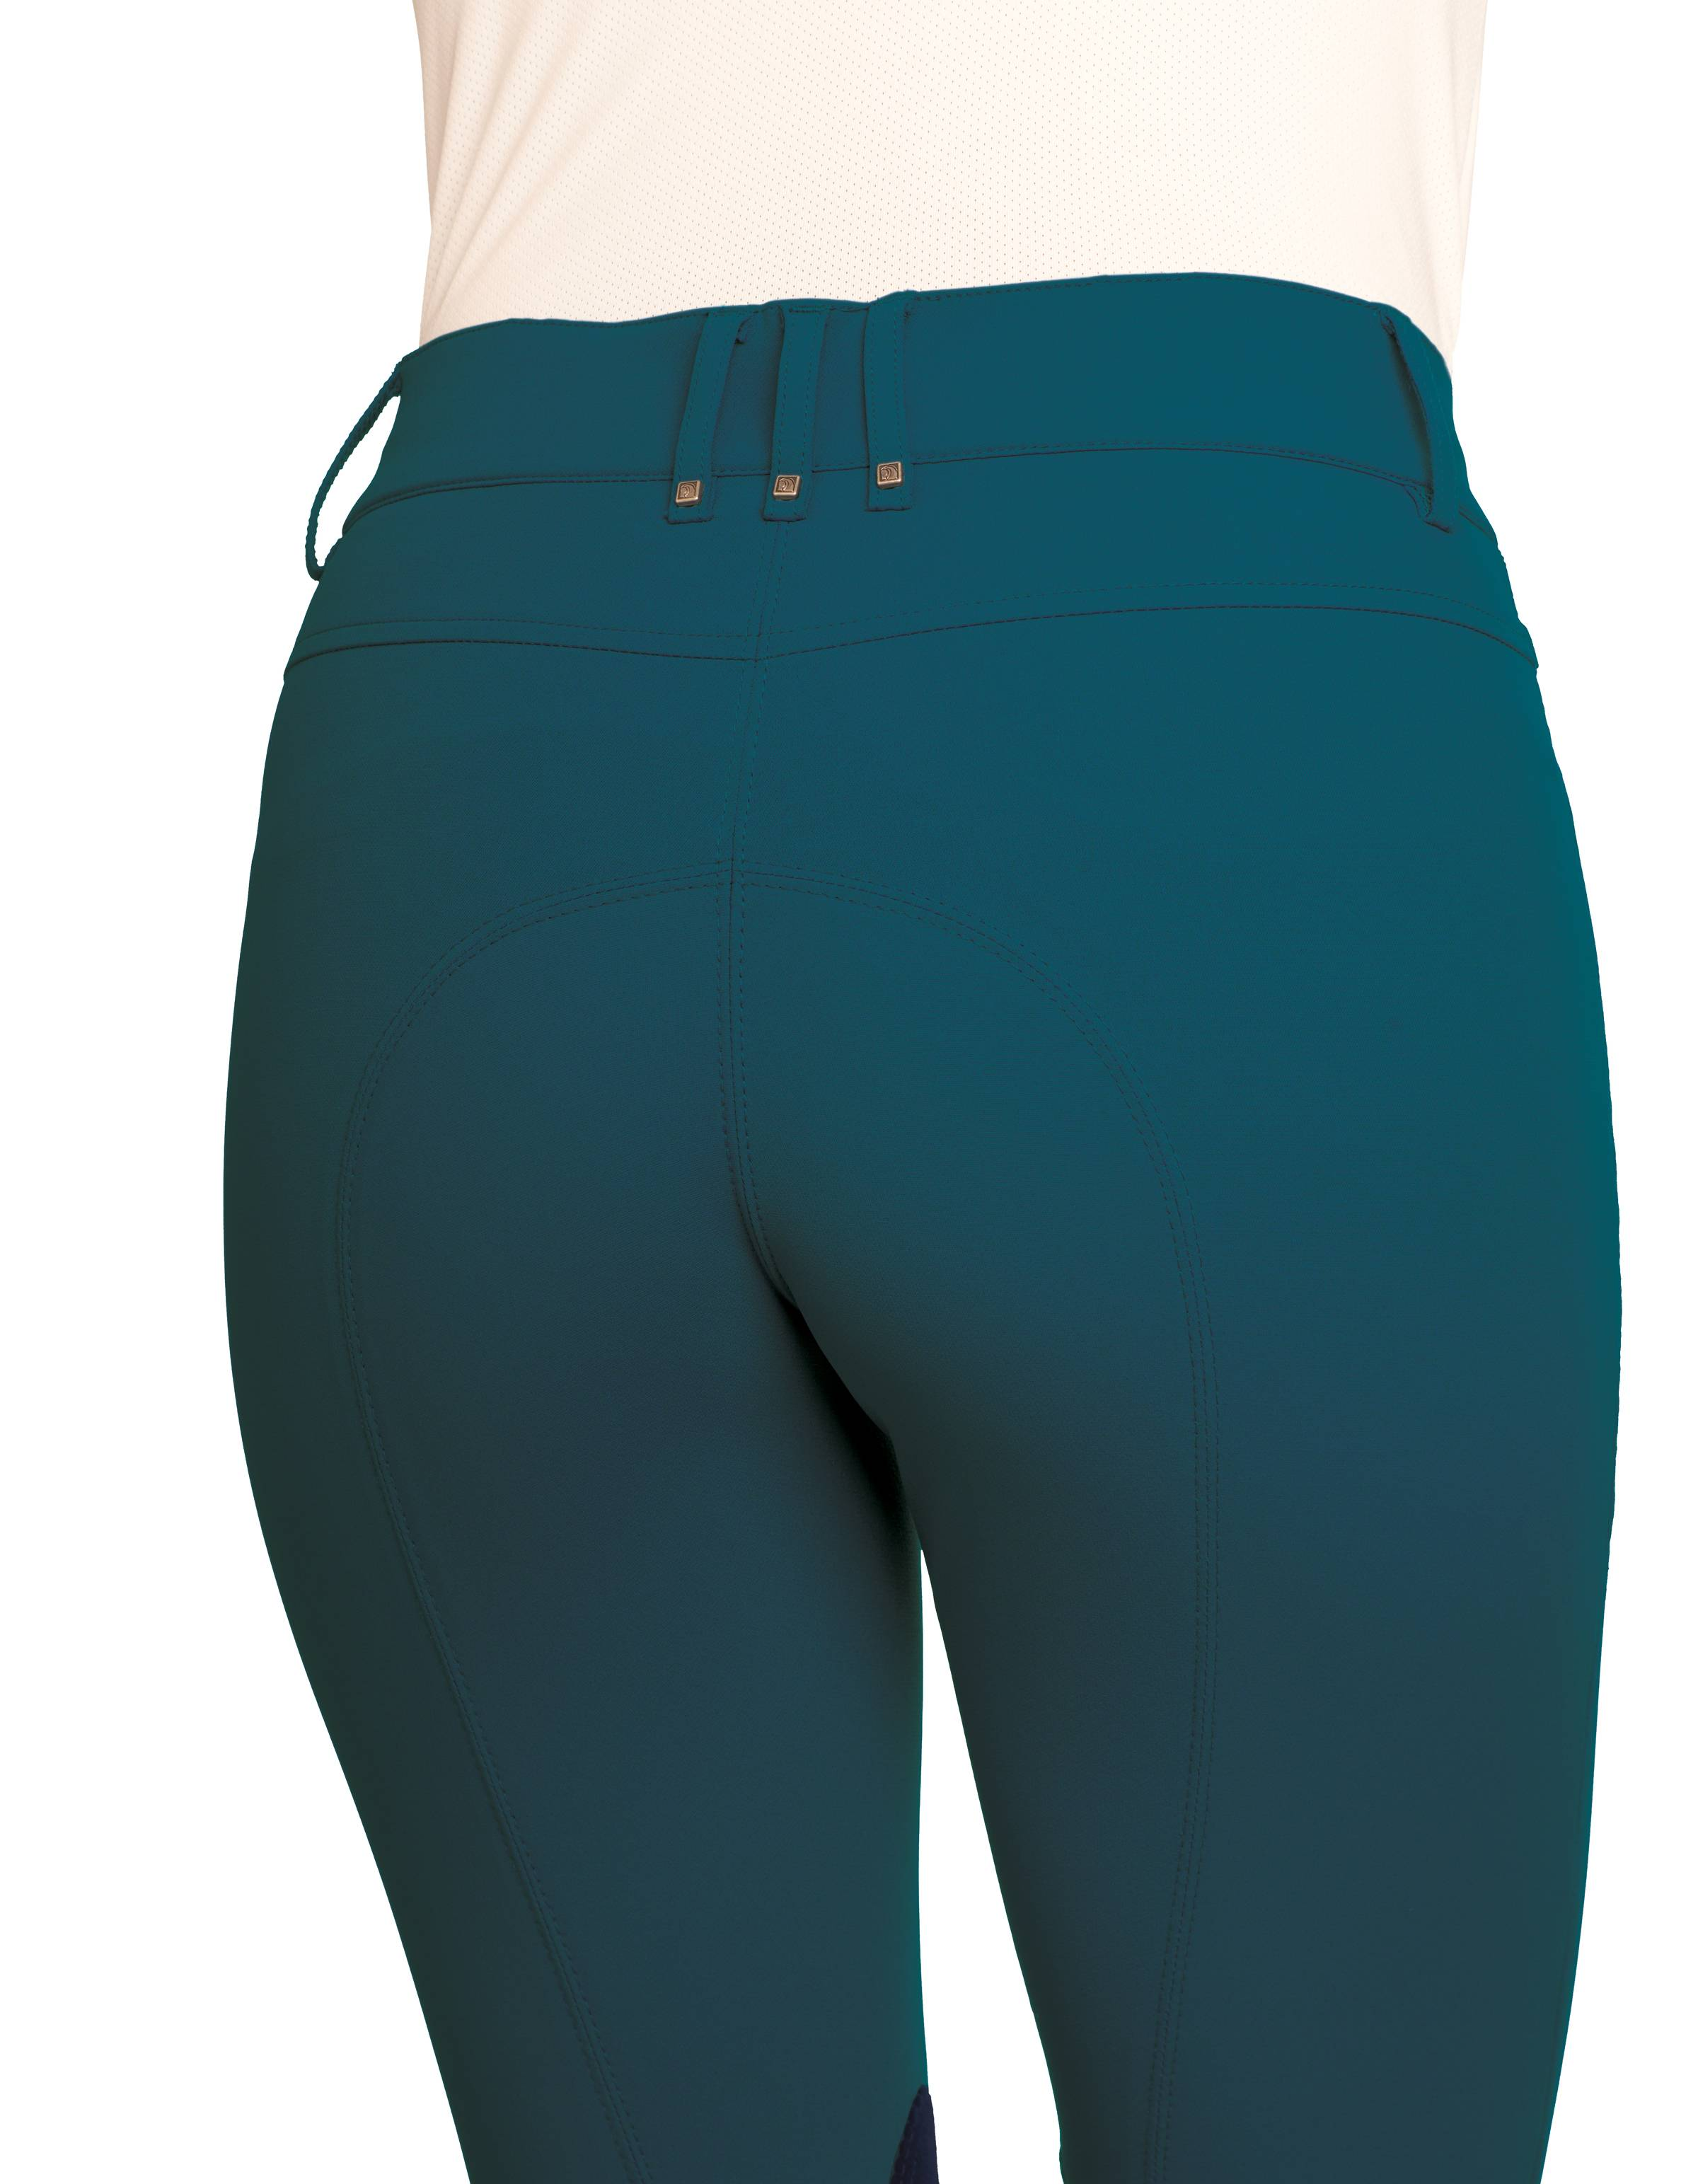 ROMFH Sarafina Ladies' Euroseat Breeches